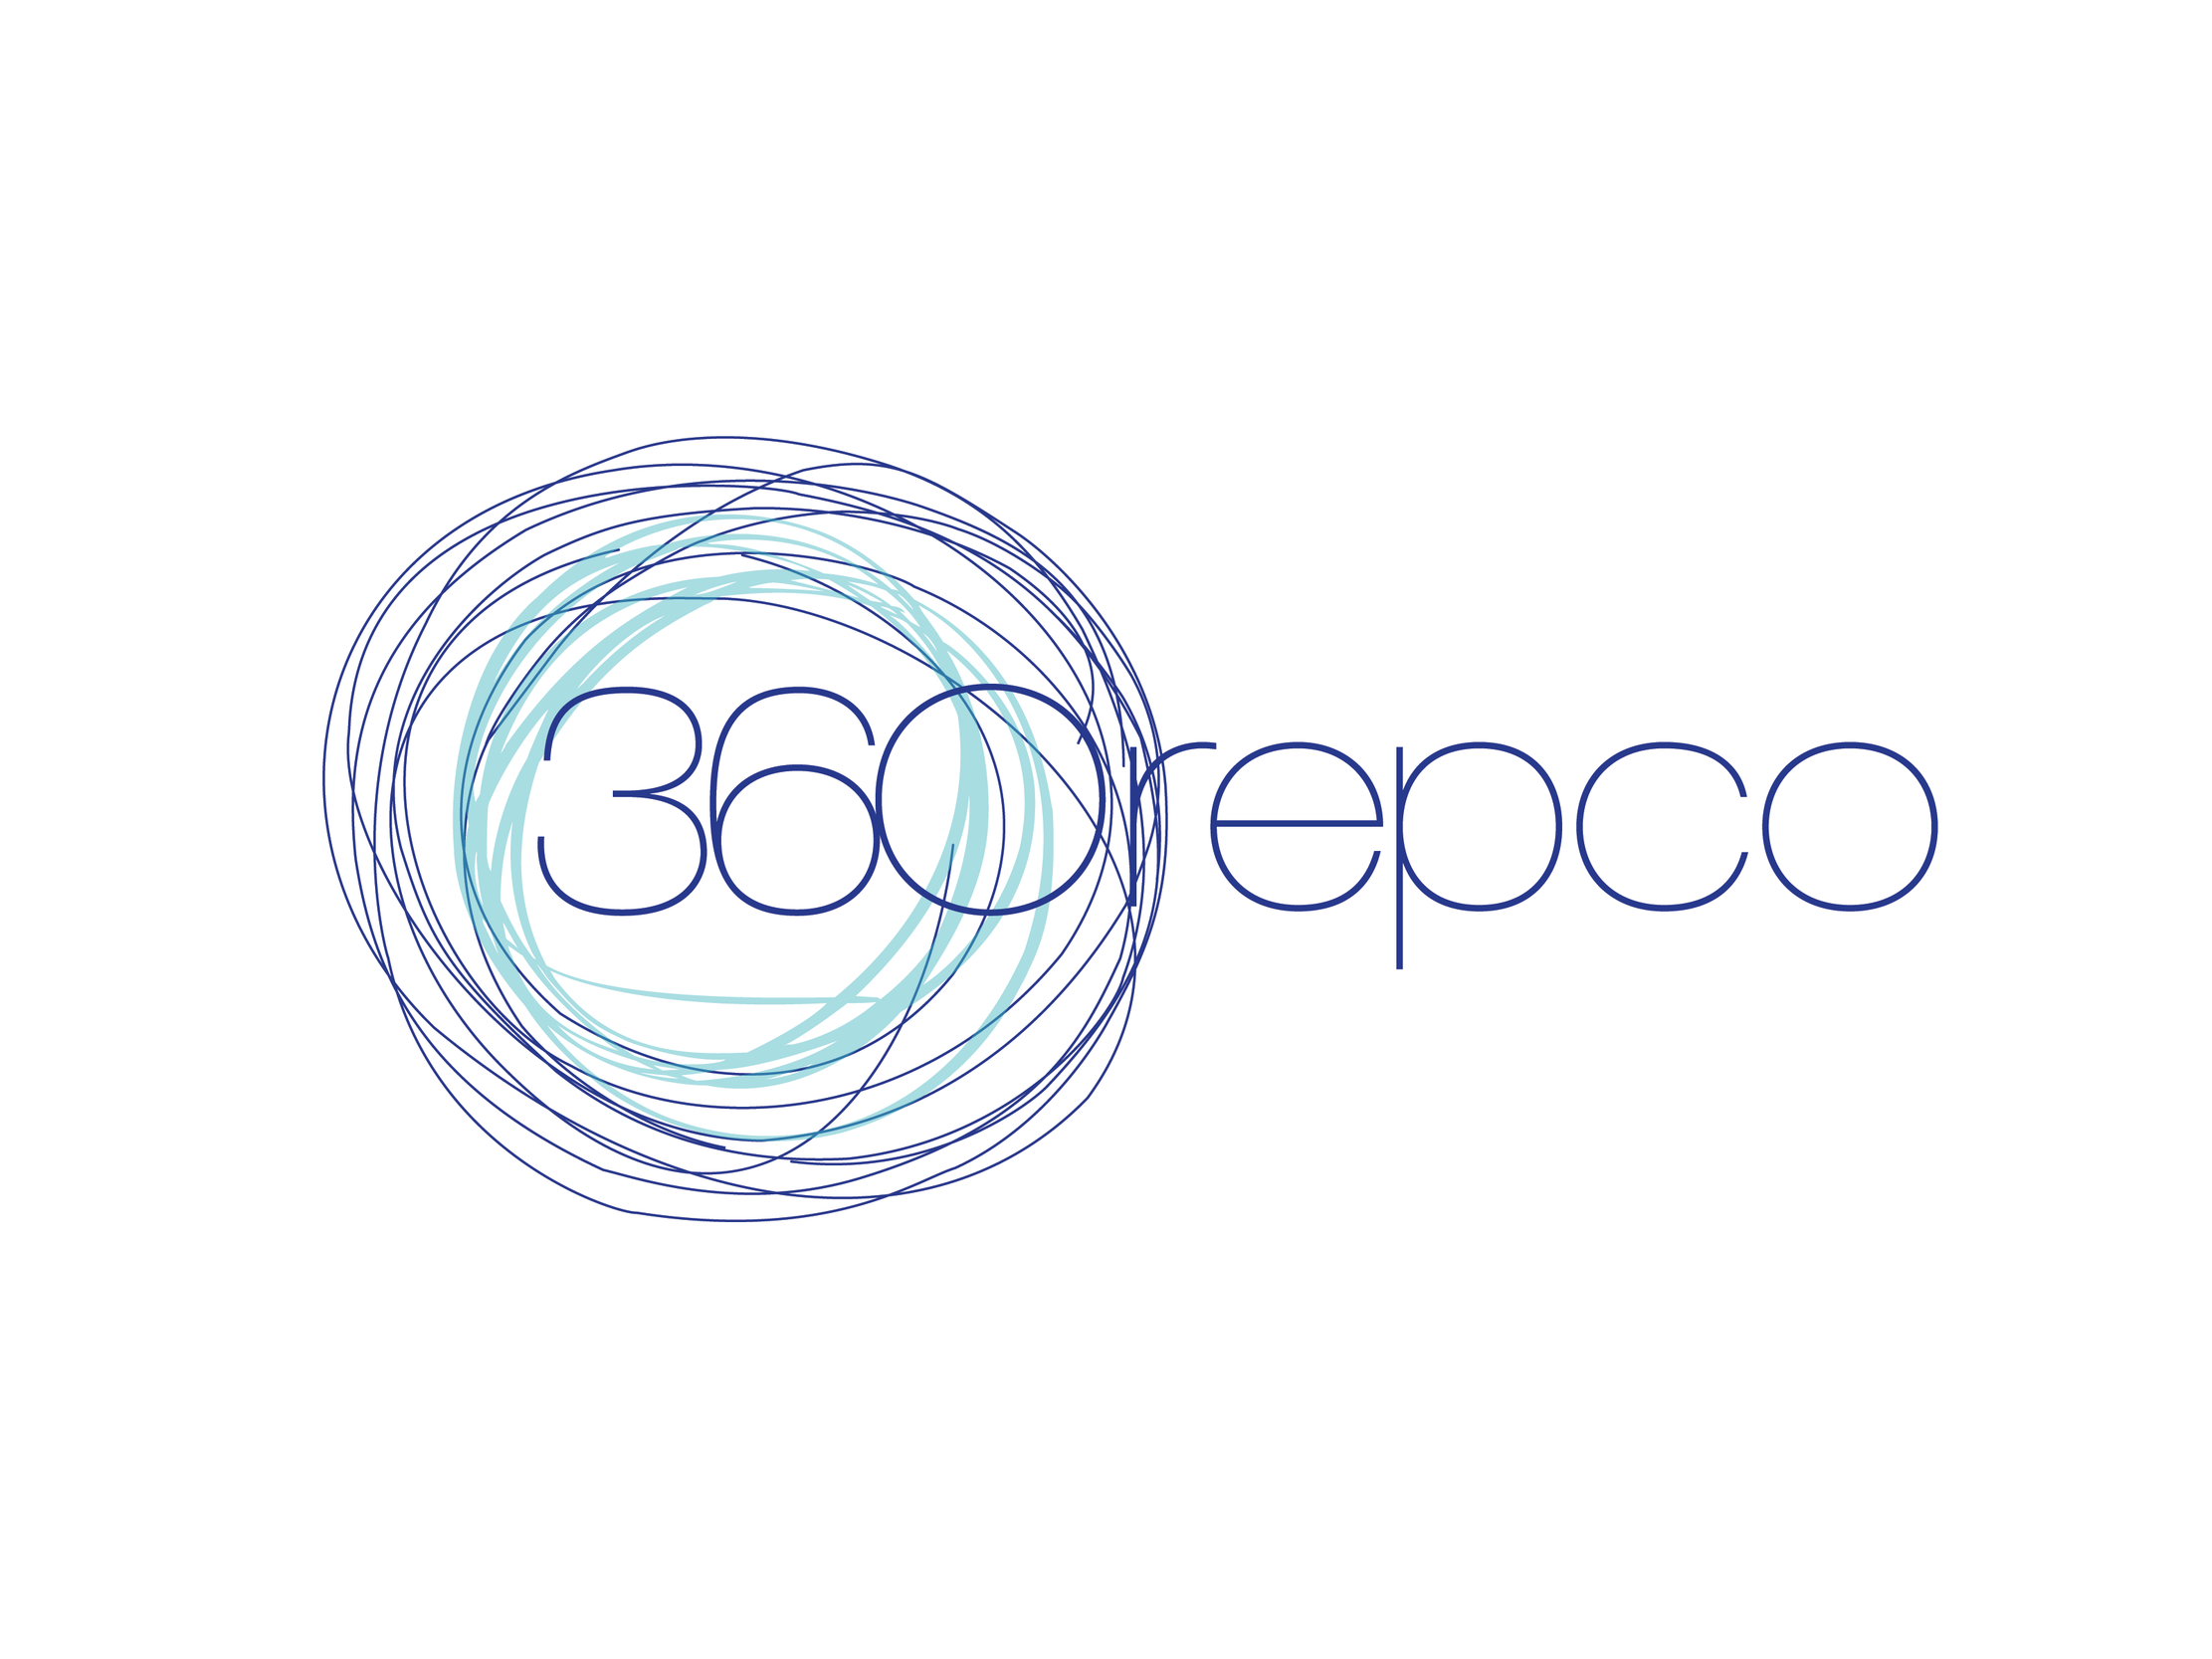 360 repco Theater Company